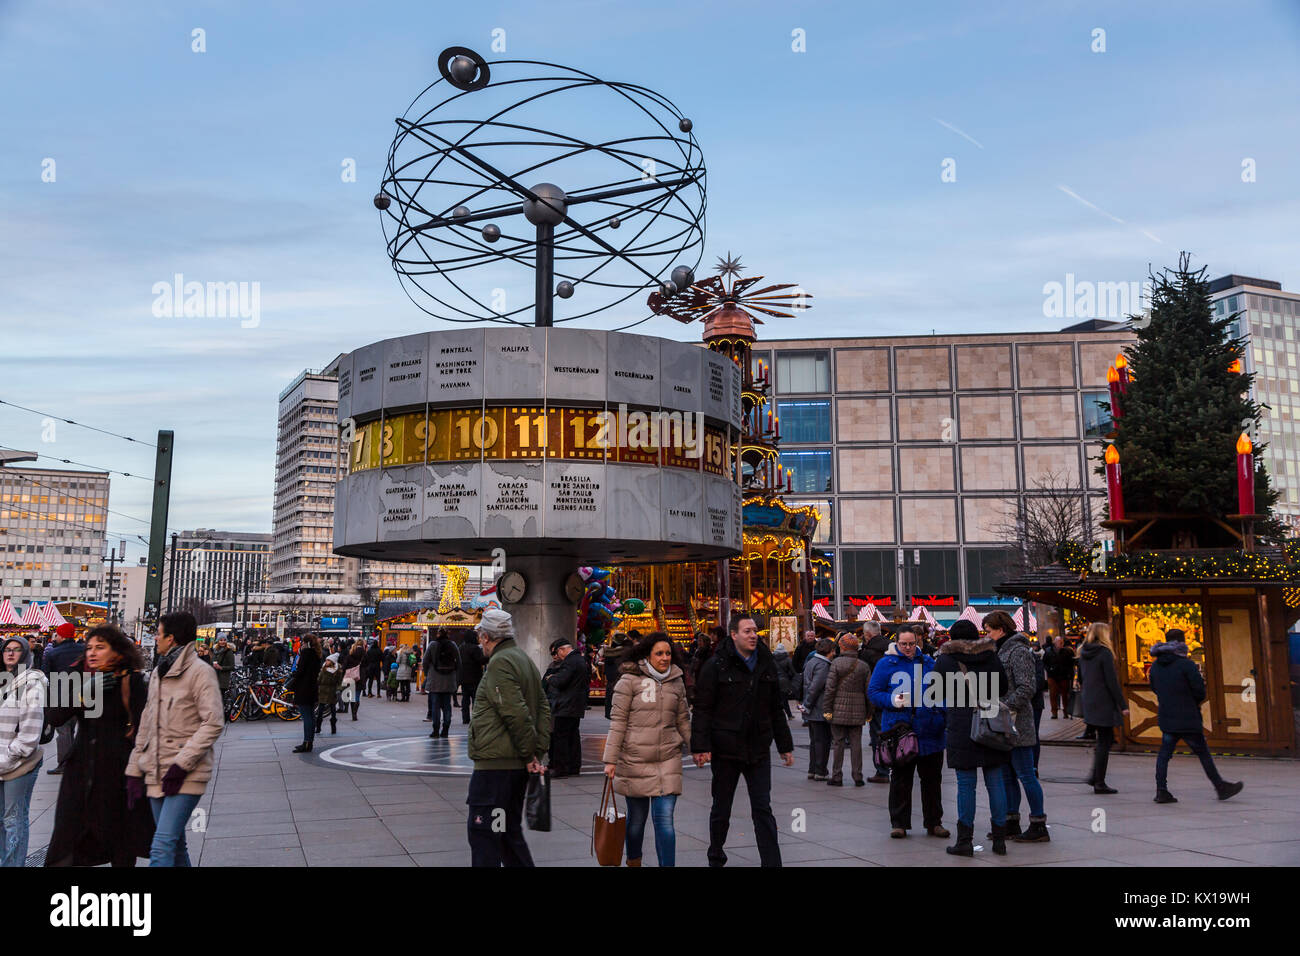 Several tourists are standing under the World Time Clock in Alexanderplatz in Berlin - Stock Image